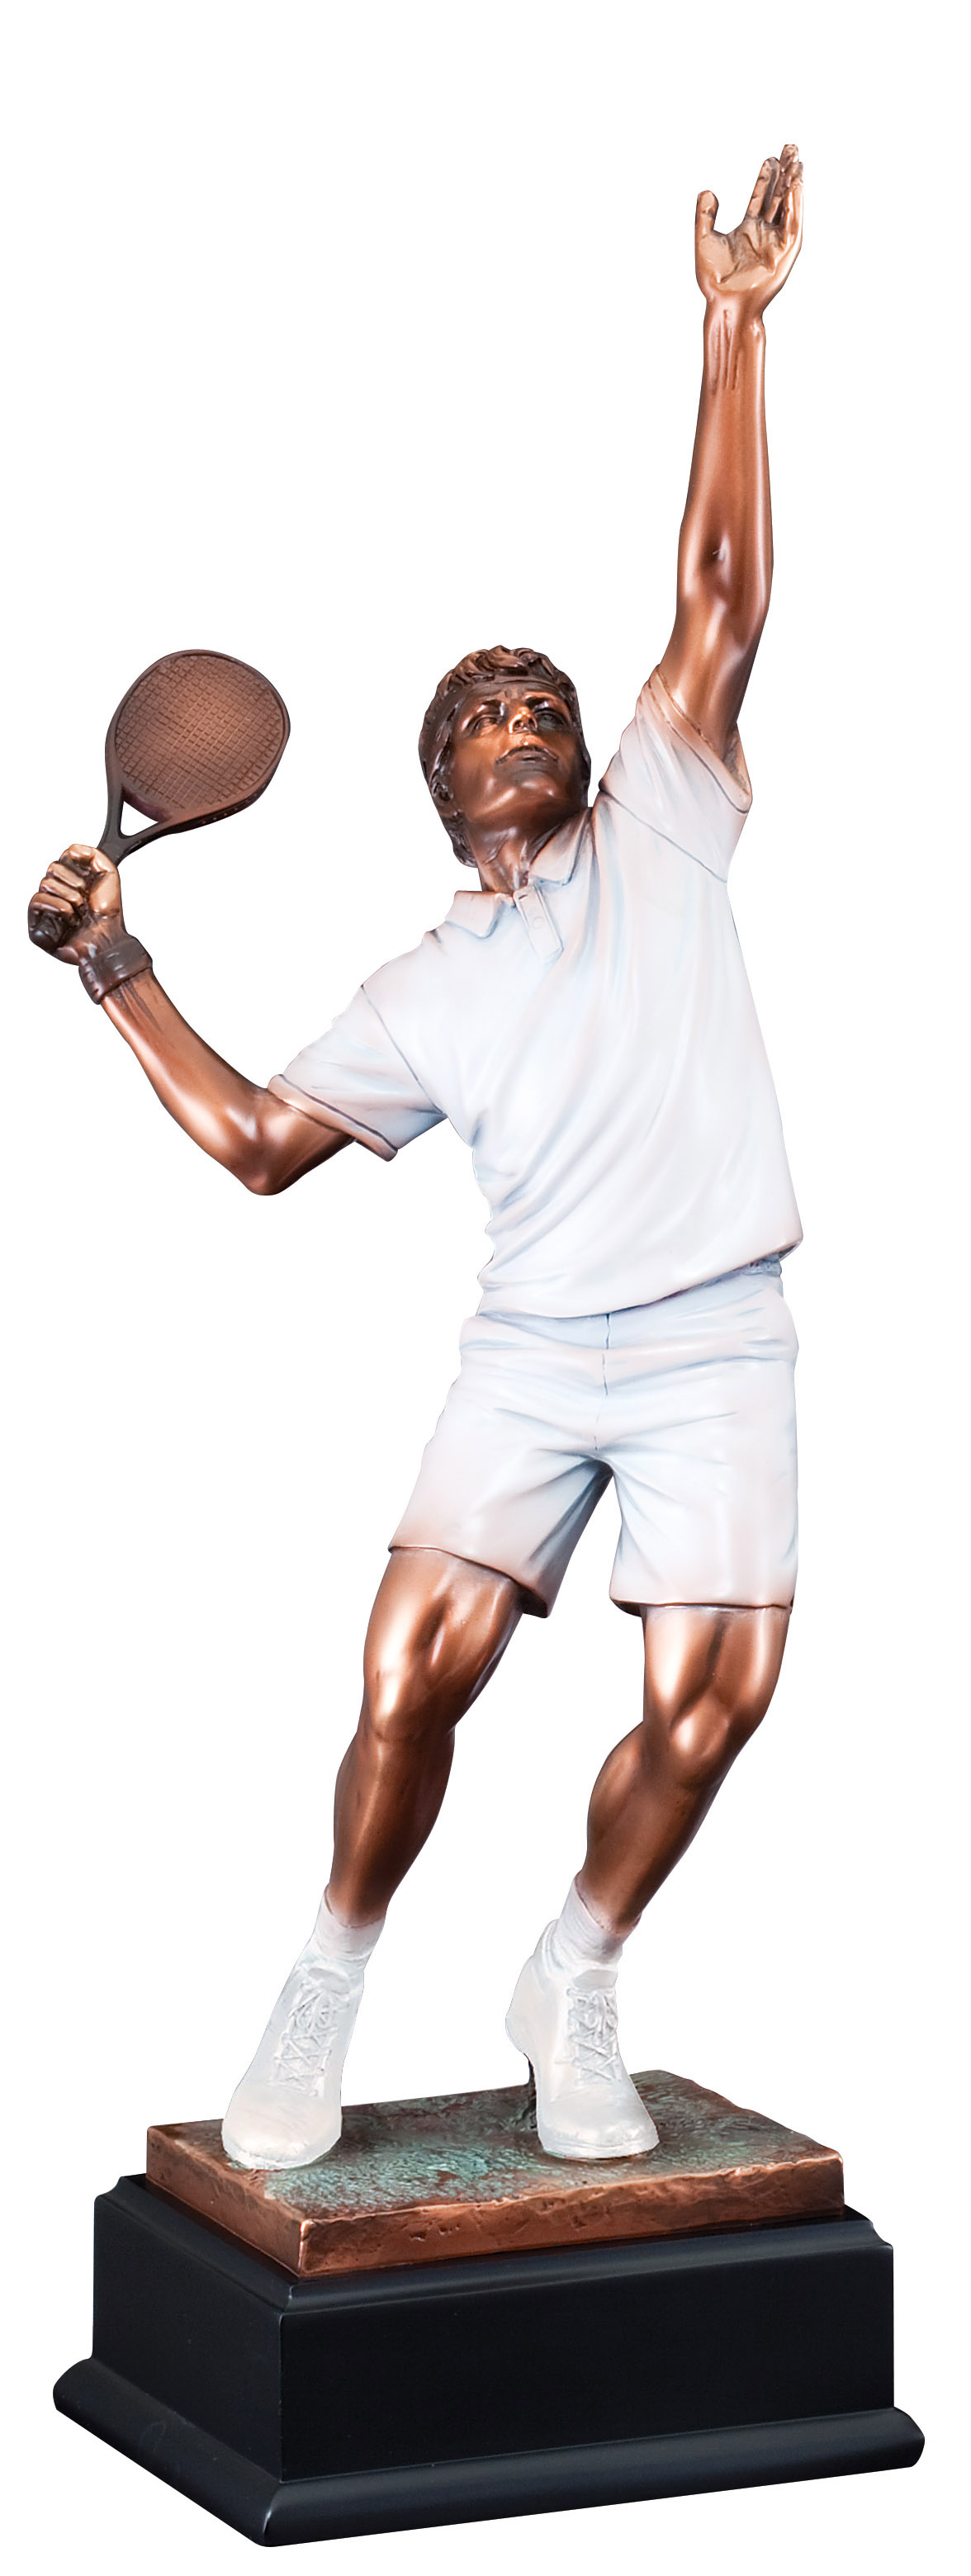 "19"" HIGH MALE TENNIS SCULPTURE--ITEM#1183"